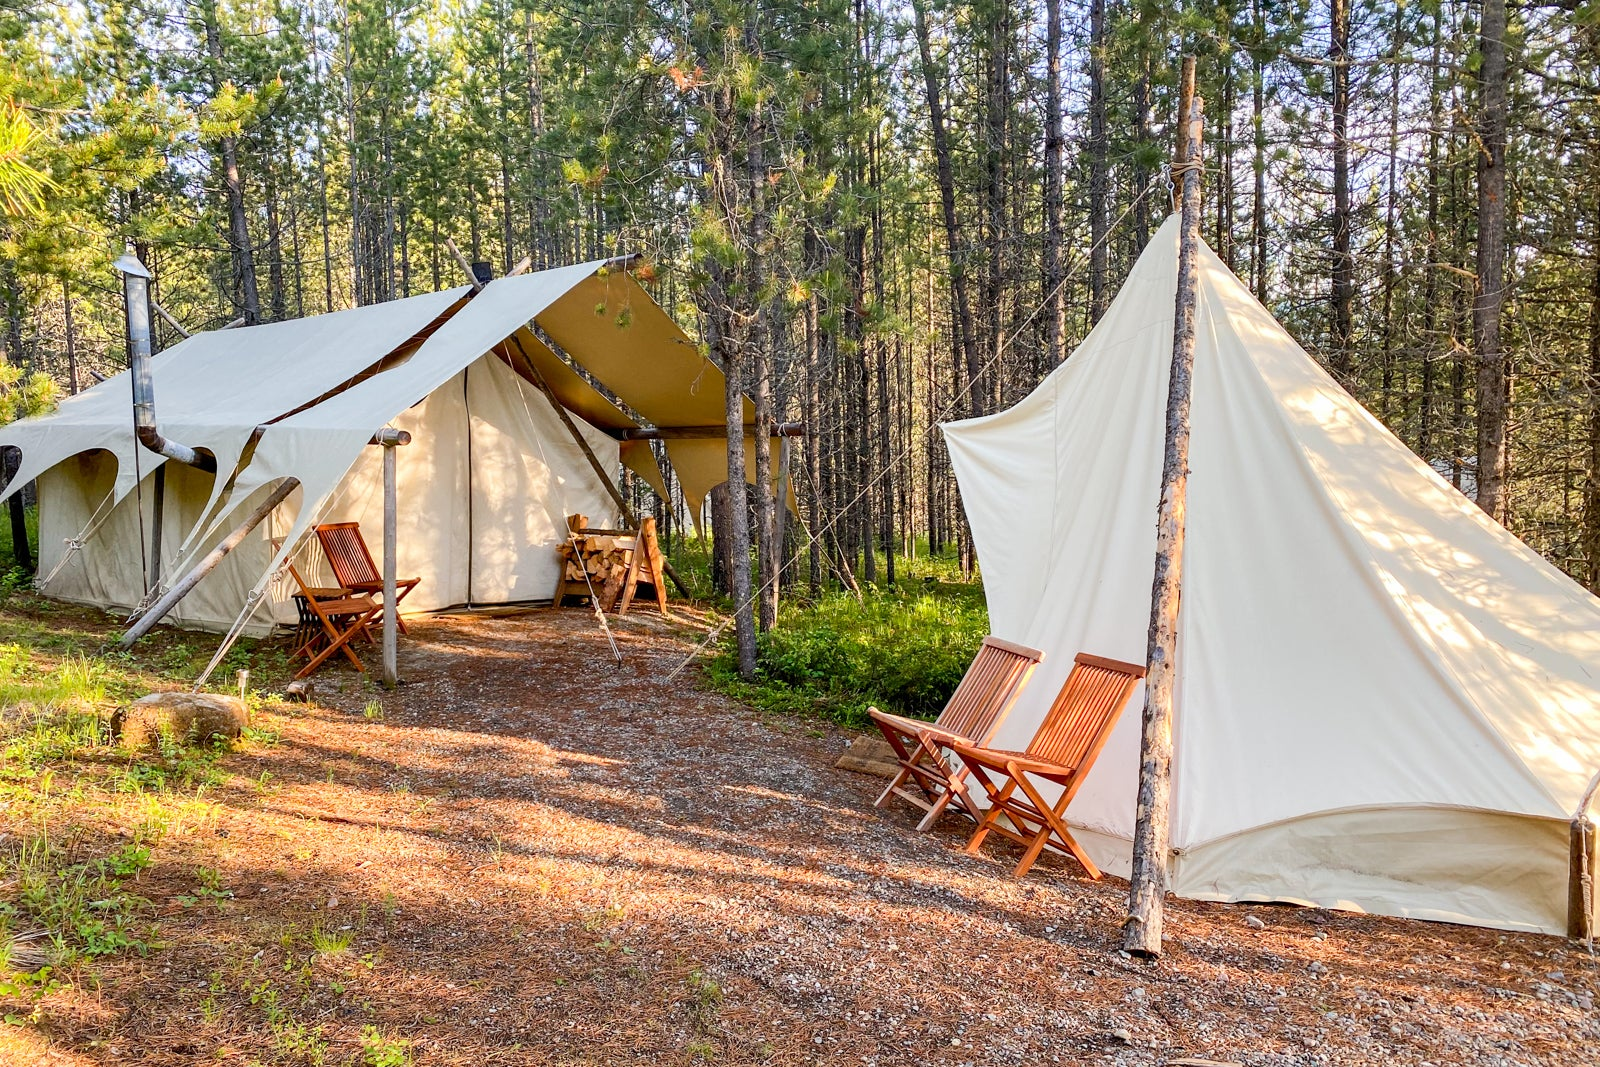 A non-camper tried 'glamping' with Under Canvas - here's what it's really like - The Points Guy